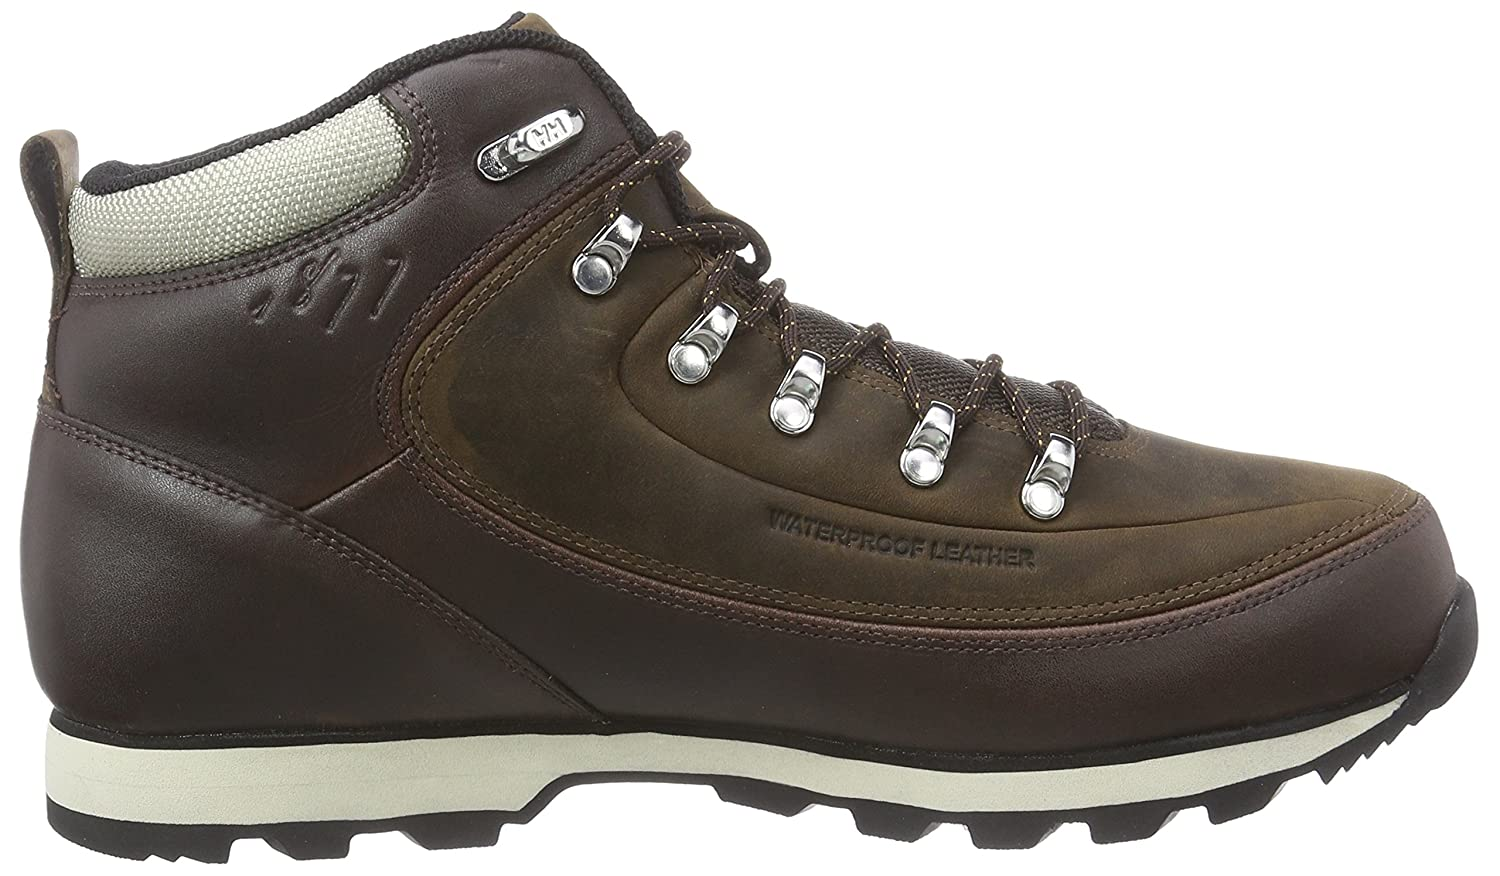 Mens The Forester Warm Lined Classic Boots Short Length Helly Hansen mpXYy48J